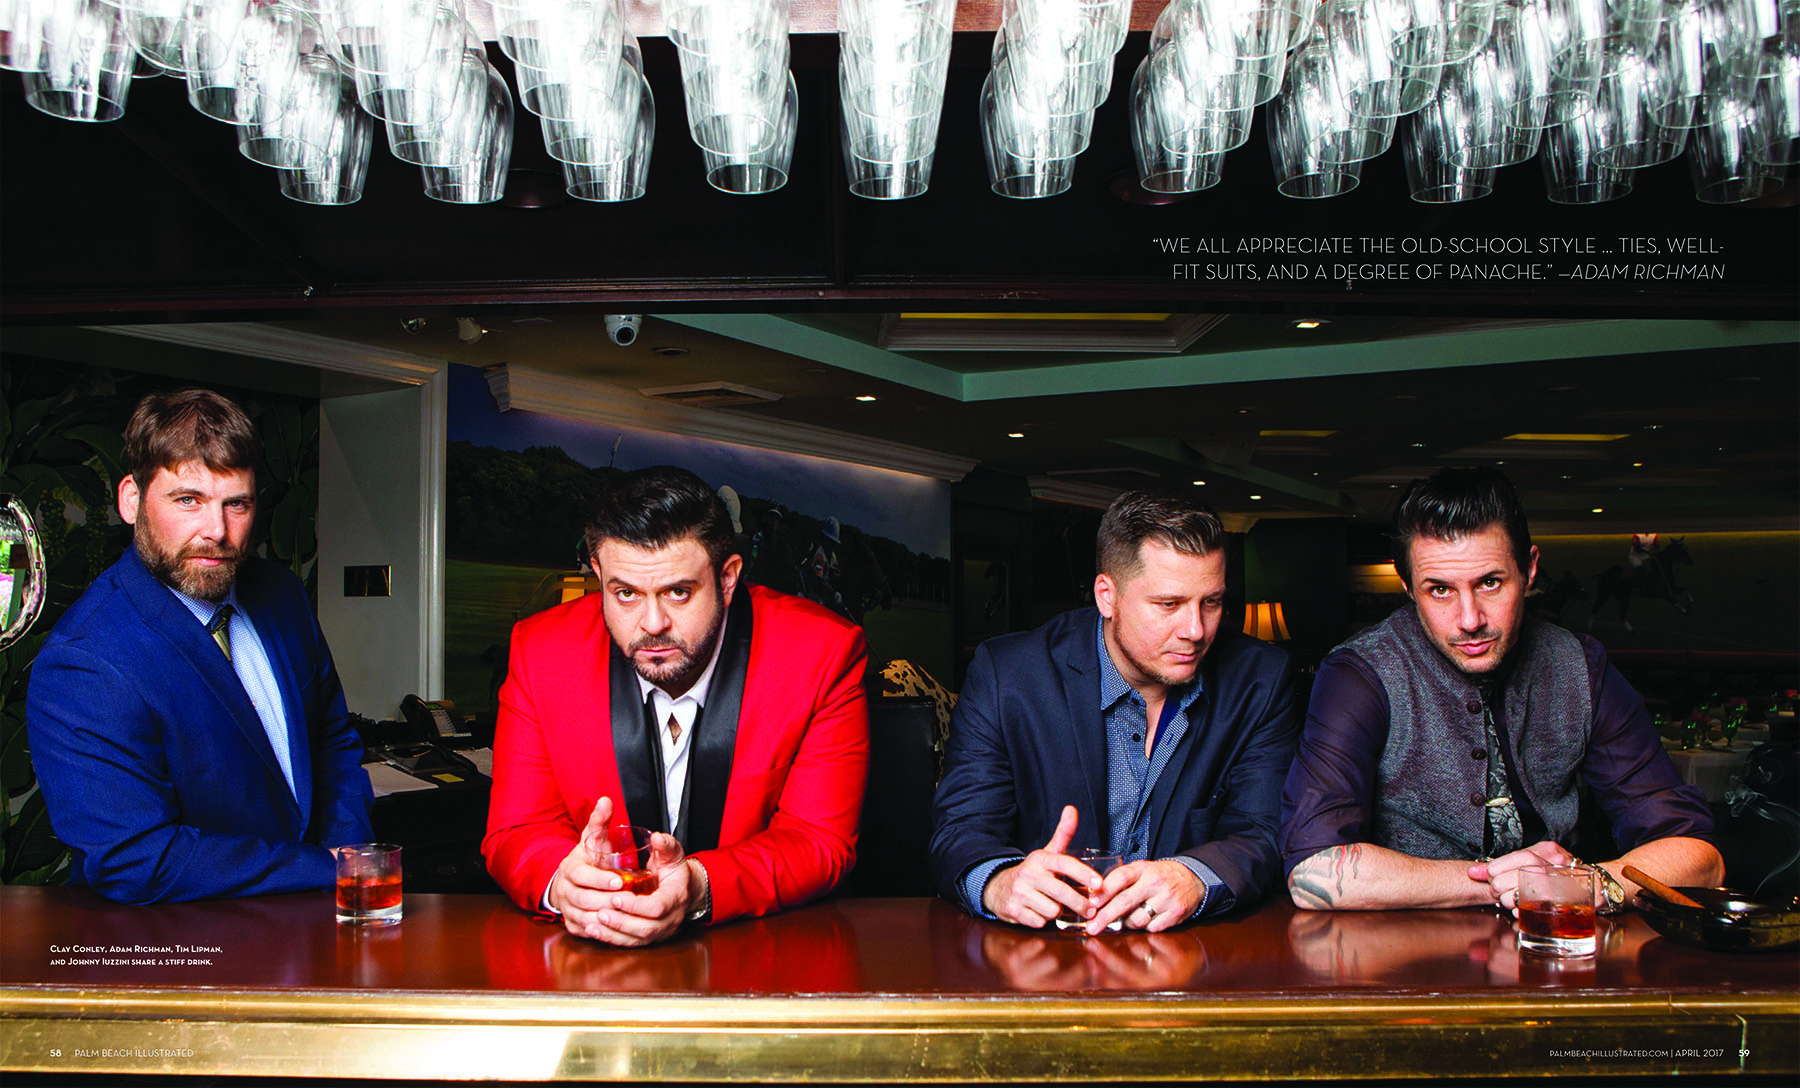 Clay Conley, Adam Richman, Tim Lipman and Johnny Iuzzini at The Colony Palm Beach Bar for Palm Beach Illustrated Magazine by Vanessa Rogers